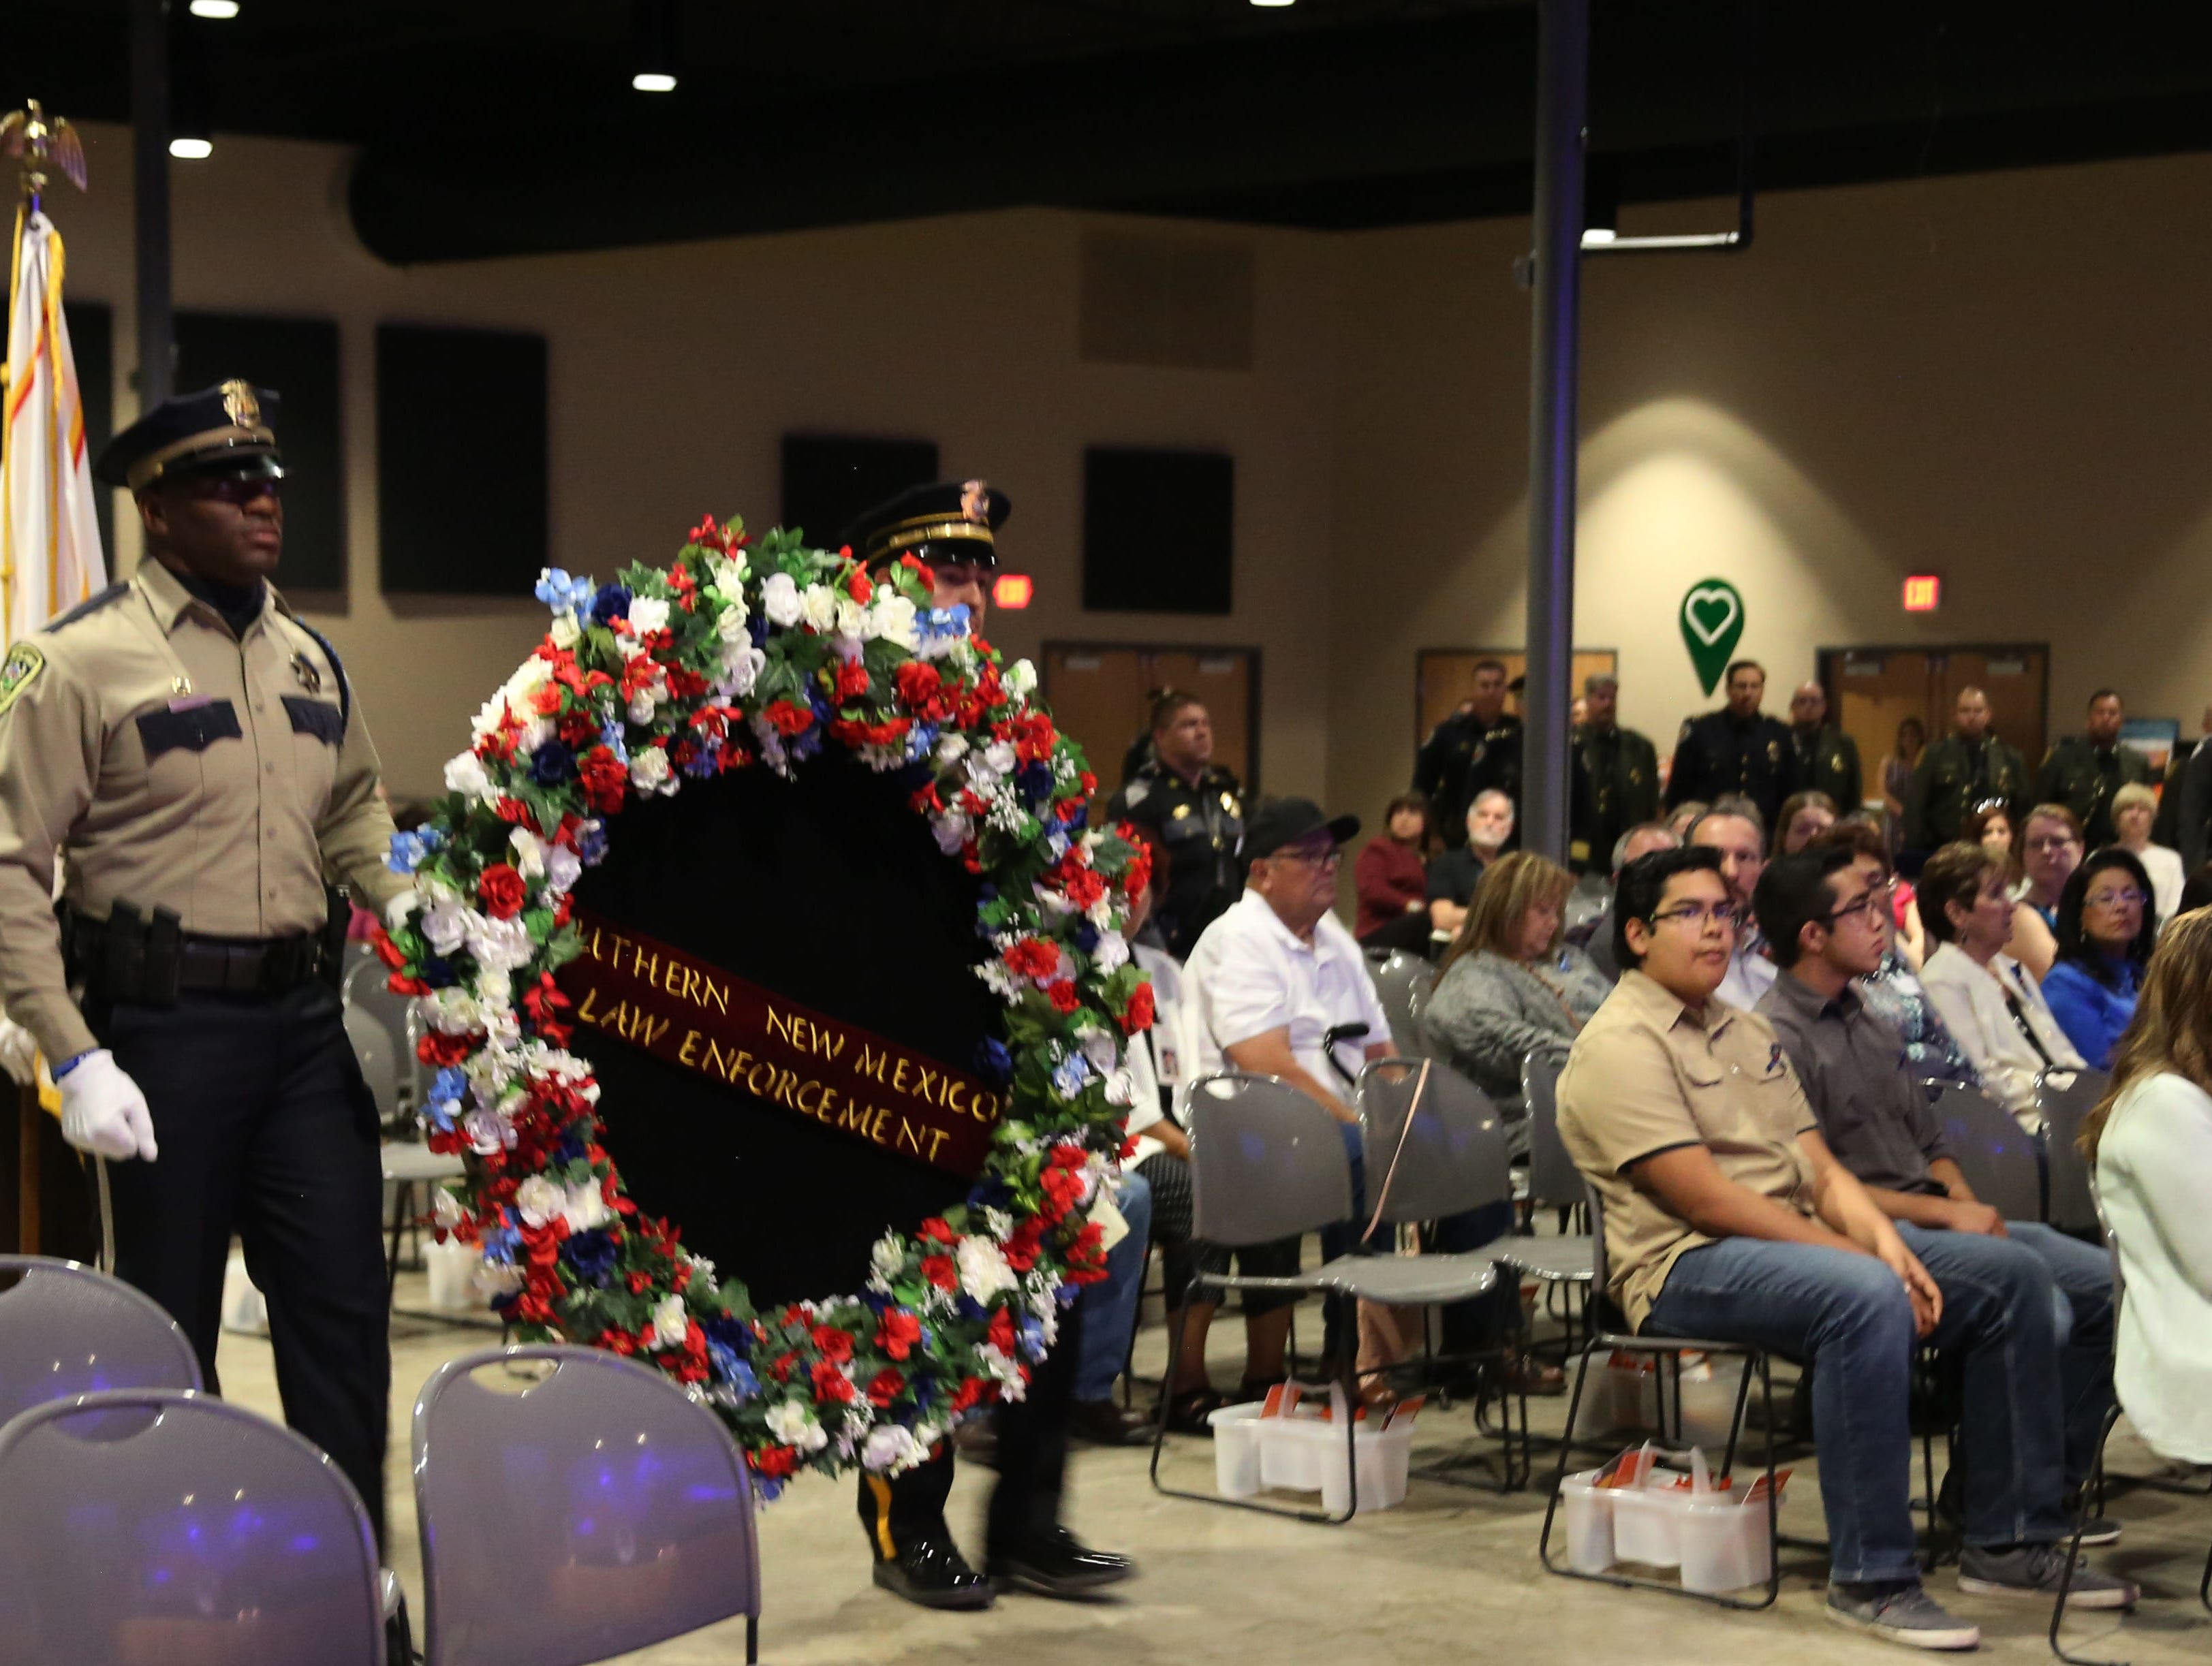 Officers walk a memorial wreath into the Fallen Officer Memorial, Tuesday May 7, 2019, at Mesilla Park Community Church.